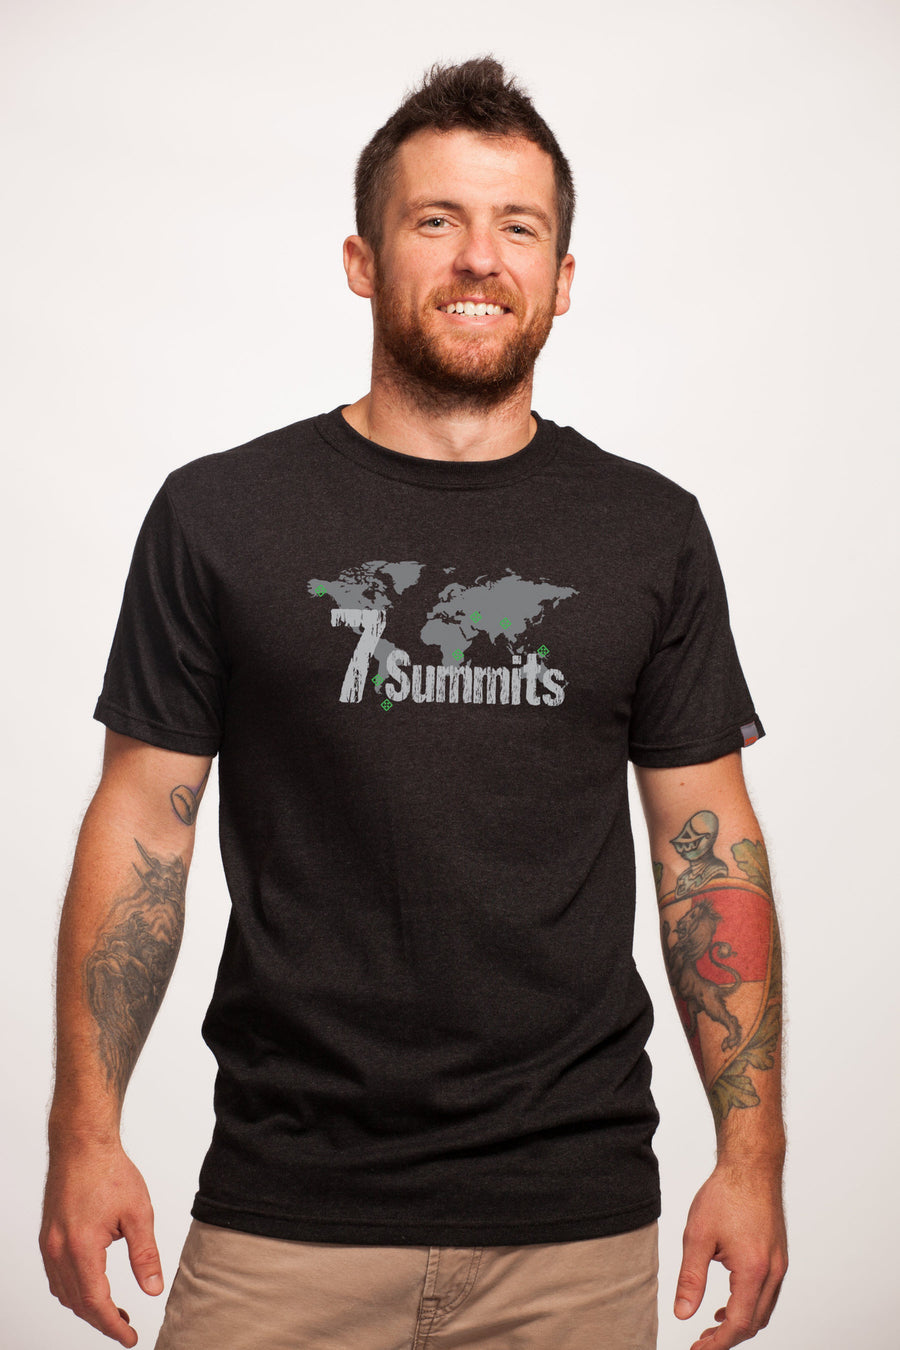 7 Summits Black Recycled T-Shirt